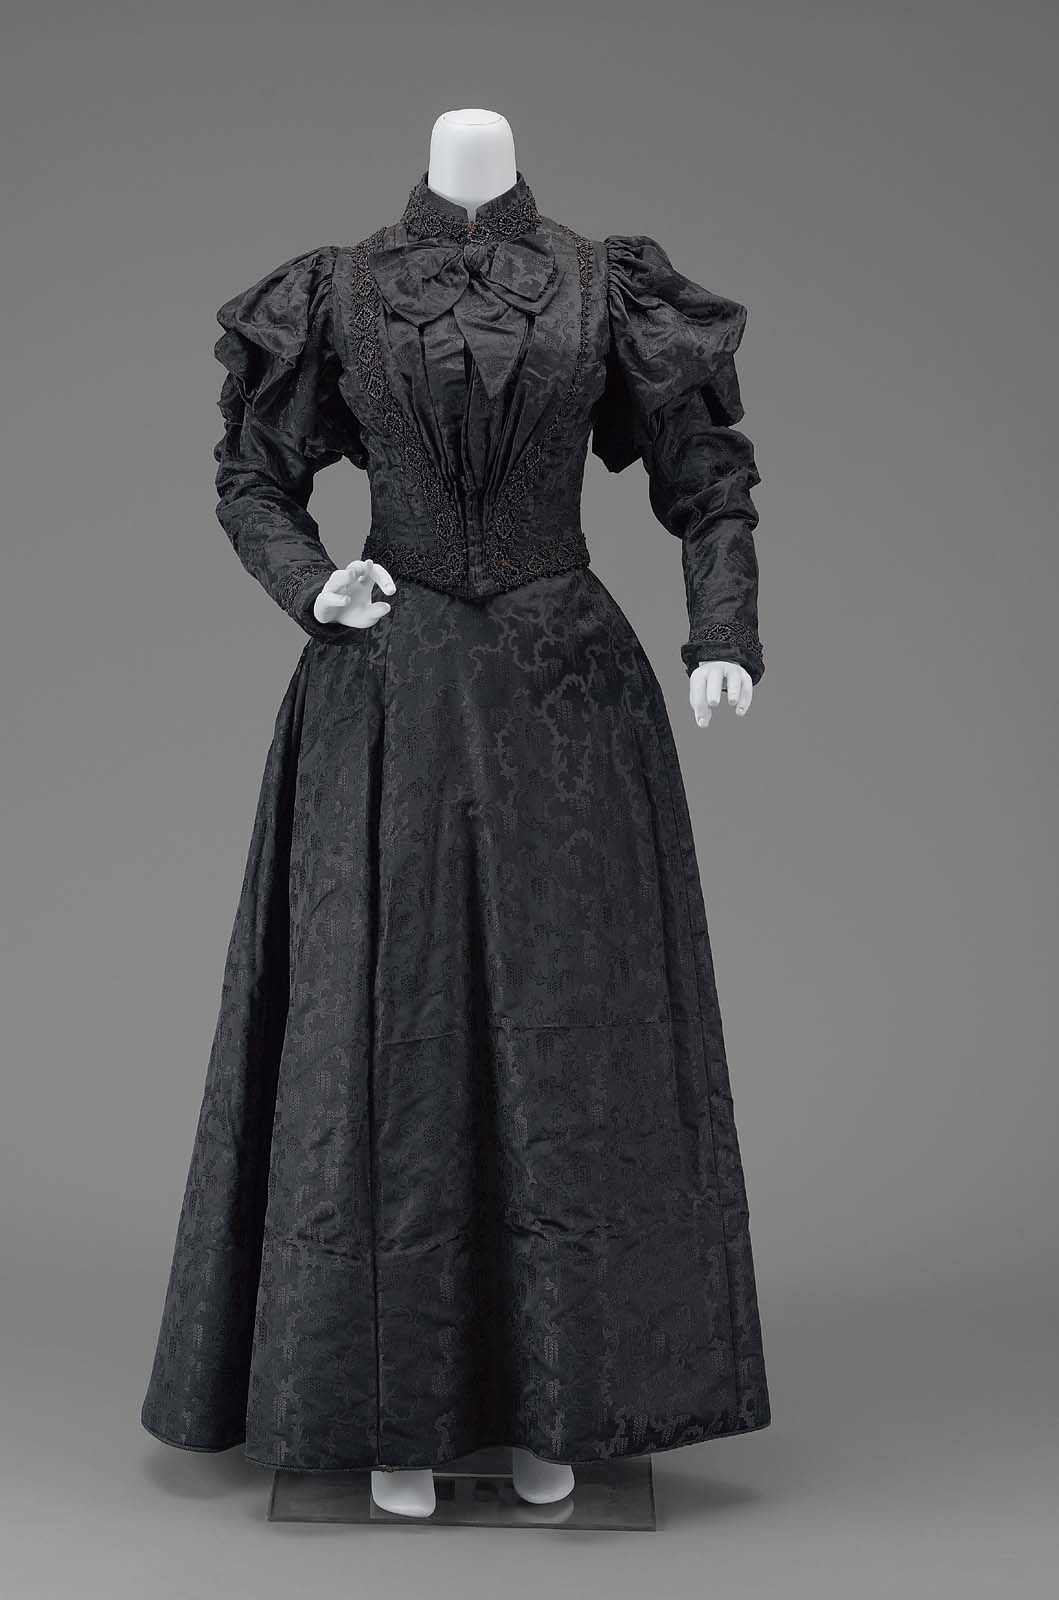 1890, America - Dress - Silk satin figured weave with jet-beaded trimming, silk satin lining, boning, and metal hook and eye closures